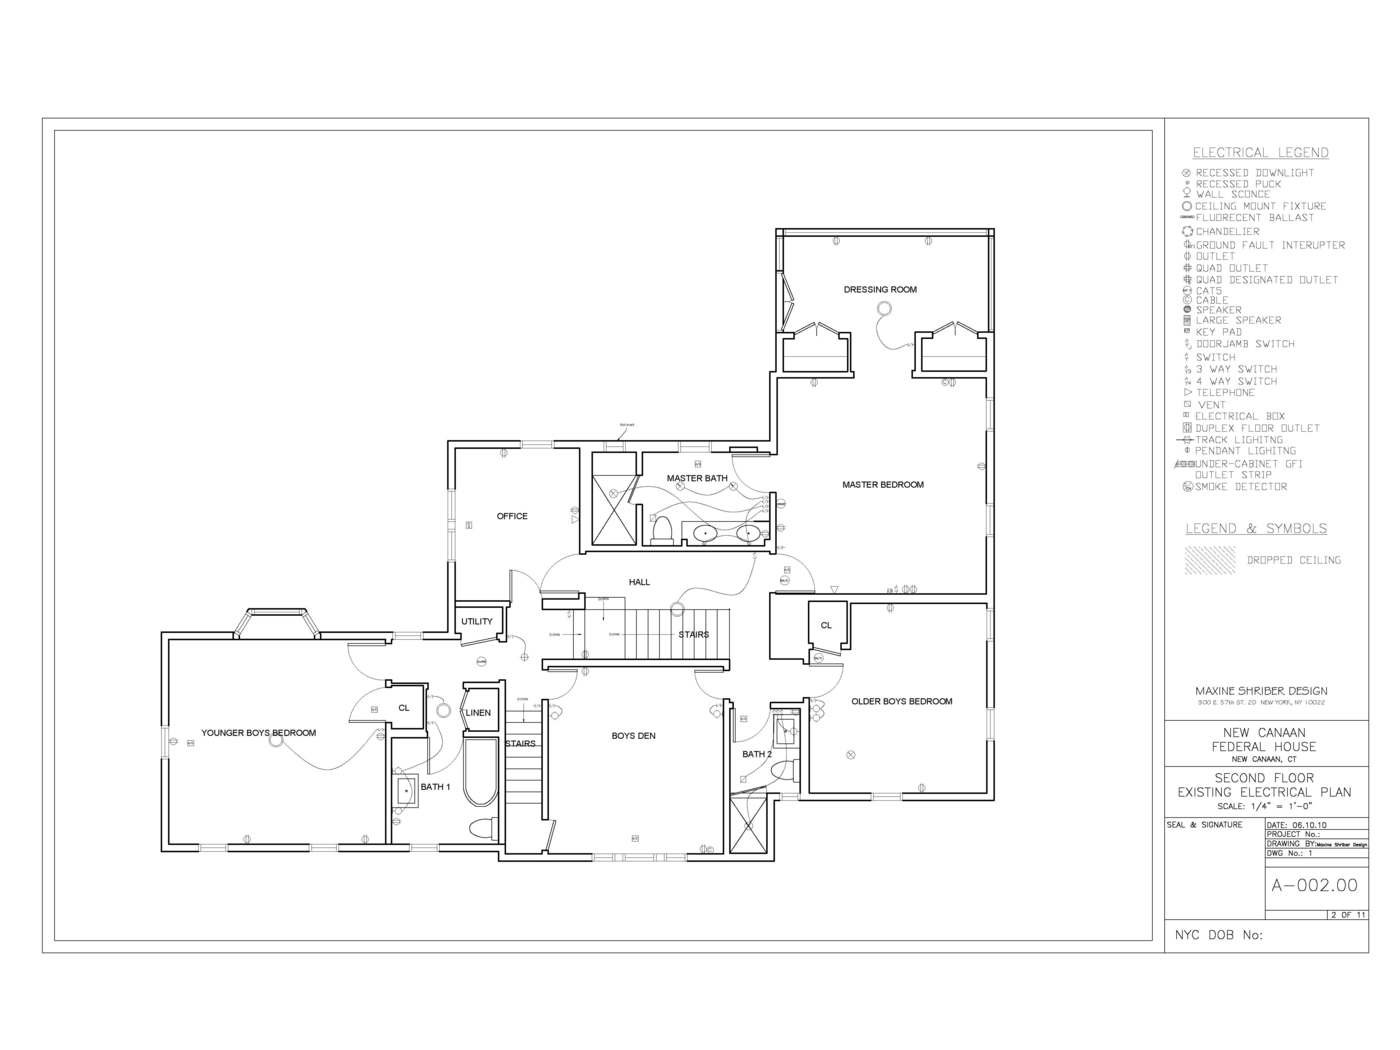 New Canaan Federal Home By Jena Haywood Leed Ap At 4 Way Switch Electrical Plan Second Fl Existing